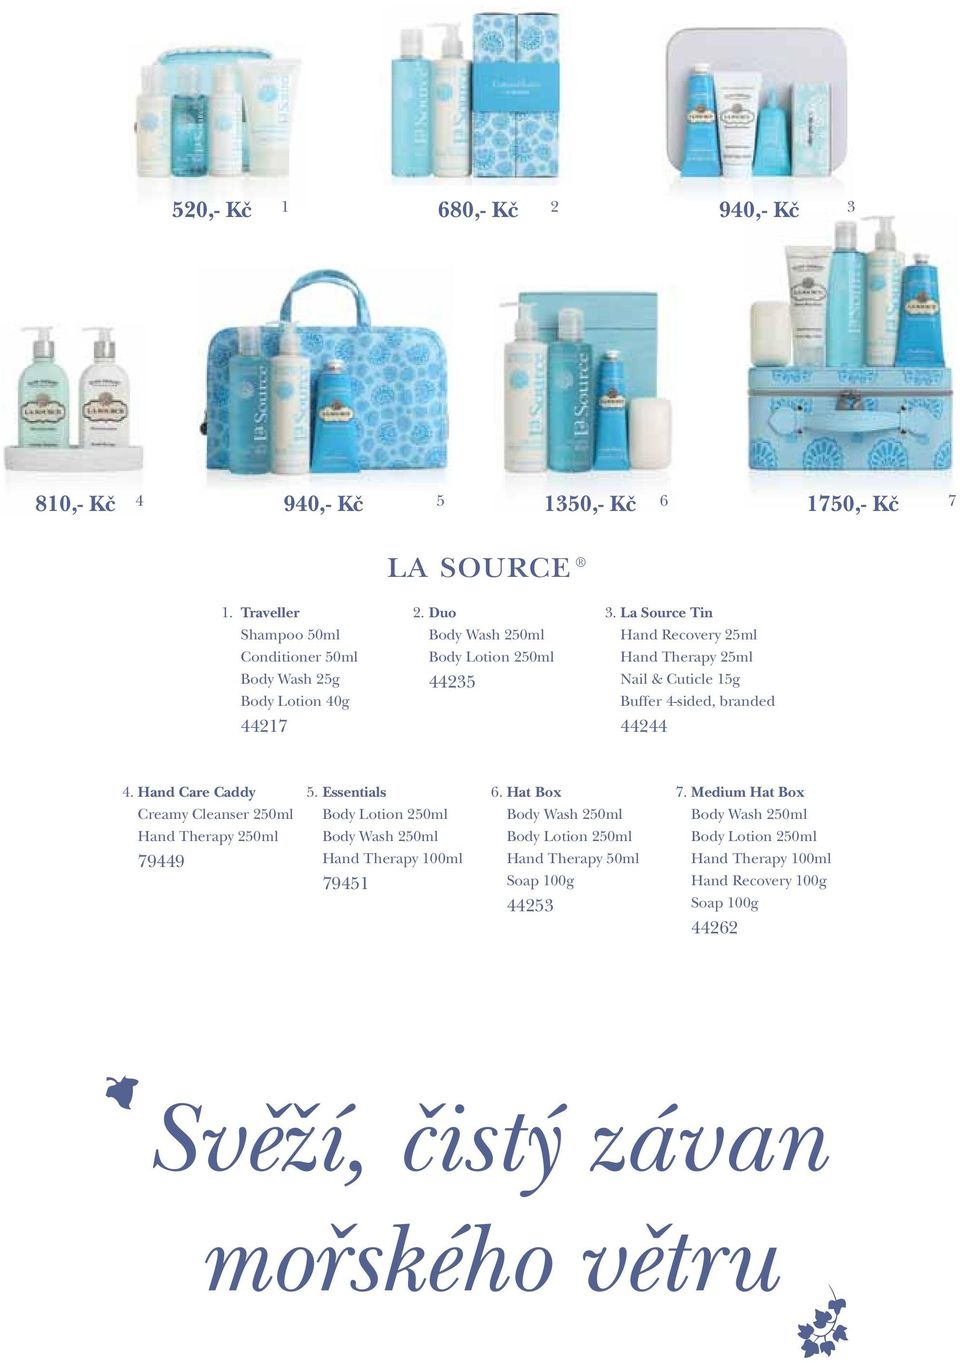 La Source Tin Hand Recovery 25ml Hand Therapy 25ml Nail & Cuticle 15g Buffer 4-sided, branded 44244 4. Hand Care Caddy 5.